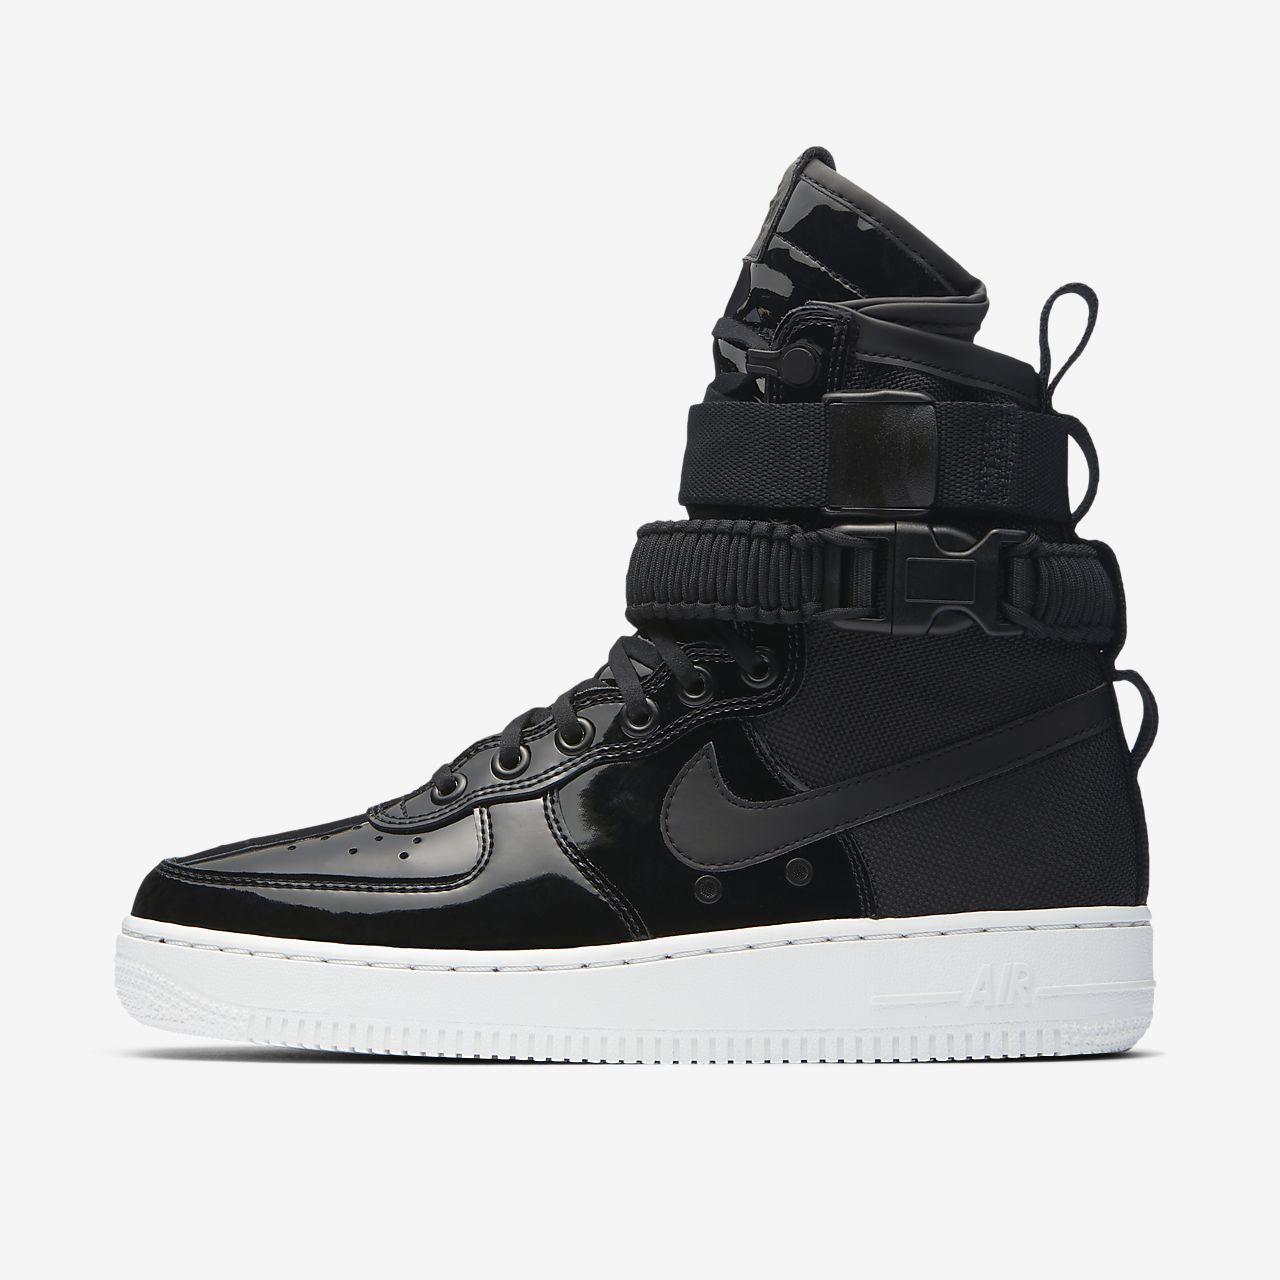 nike air force 1 black gum sole nz